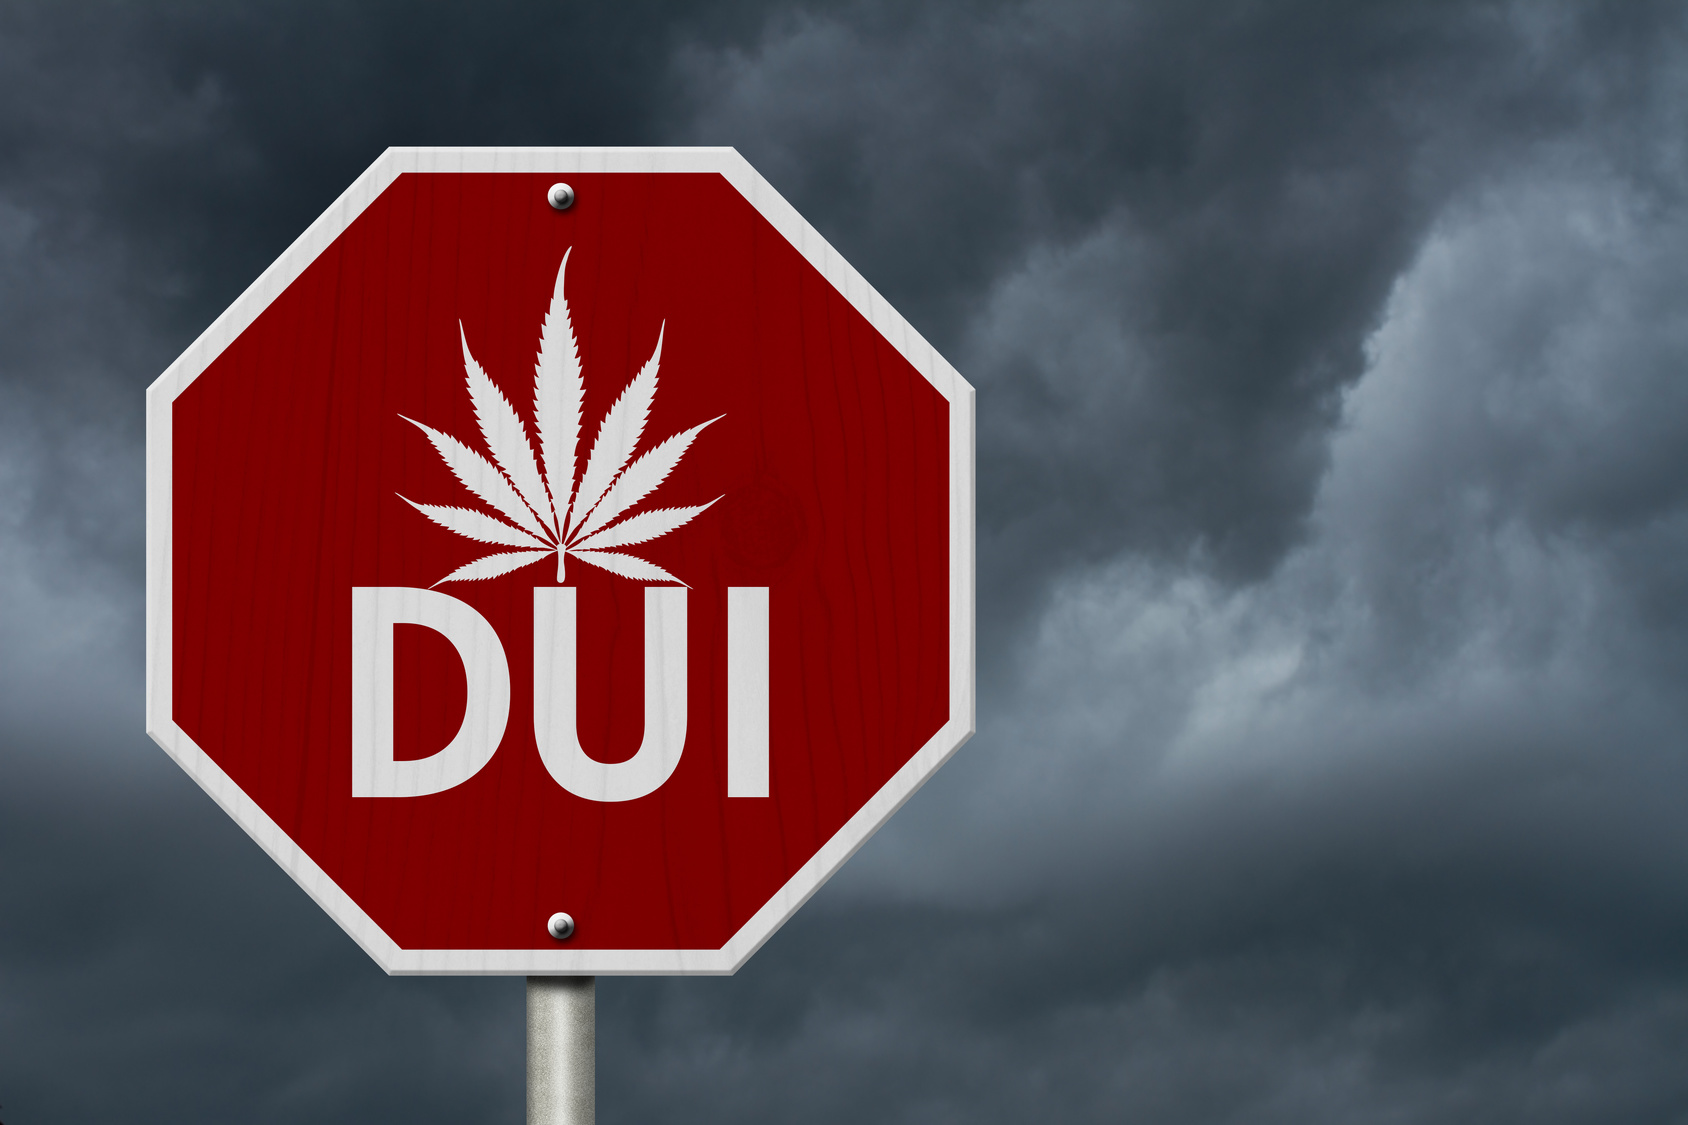 Stop Driving Under the Influence Road Sign and you will find a top DUI attorney in Flint.